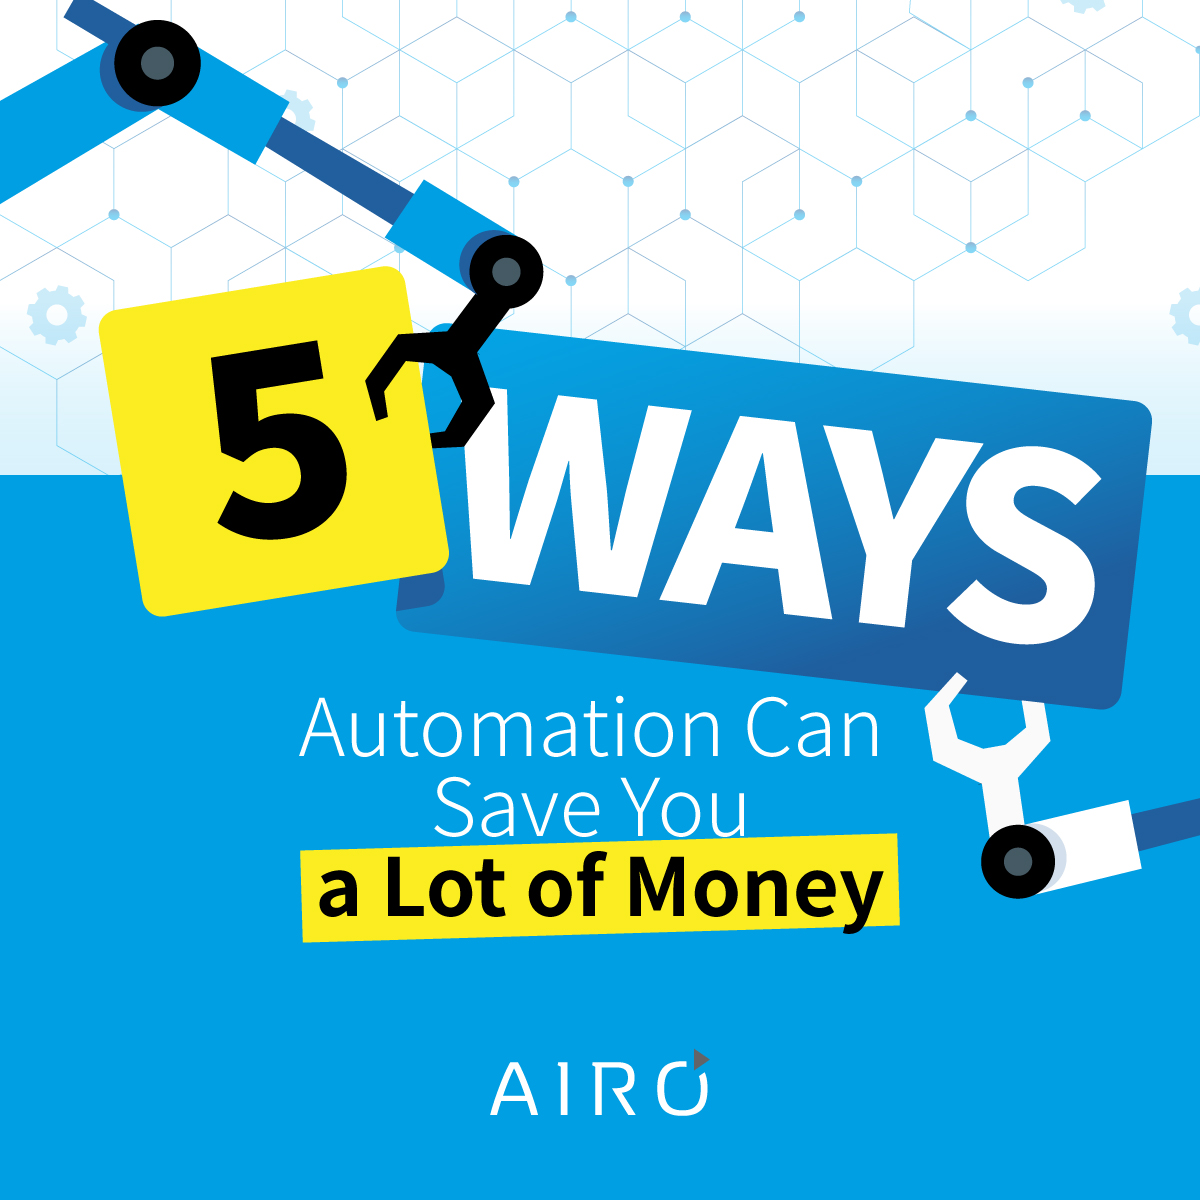 5 Ways Automation Can Save You a Lot of Money